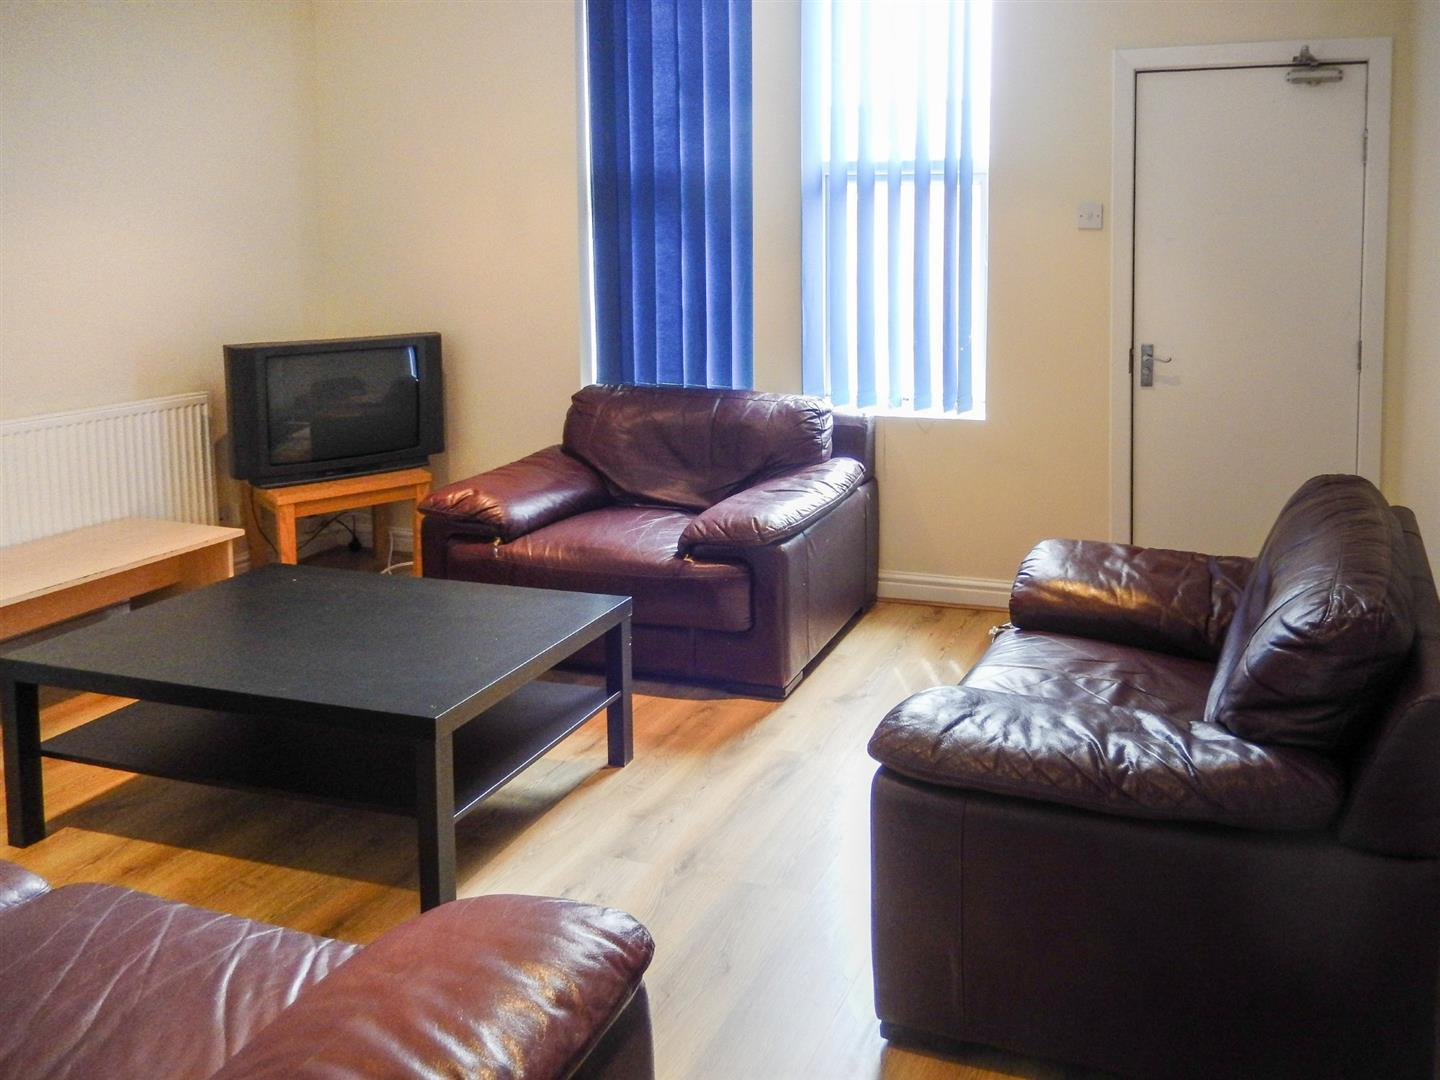 5 bed maisonette to rent in Heaton, NE6 5XJ, NE6